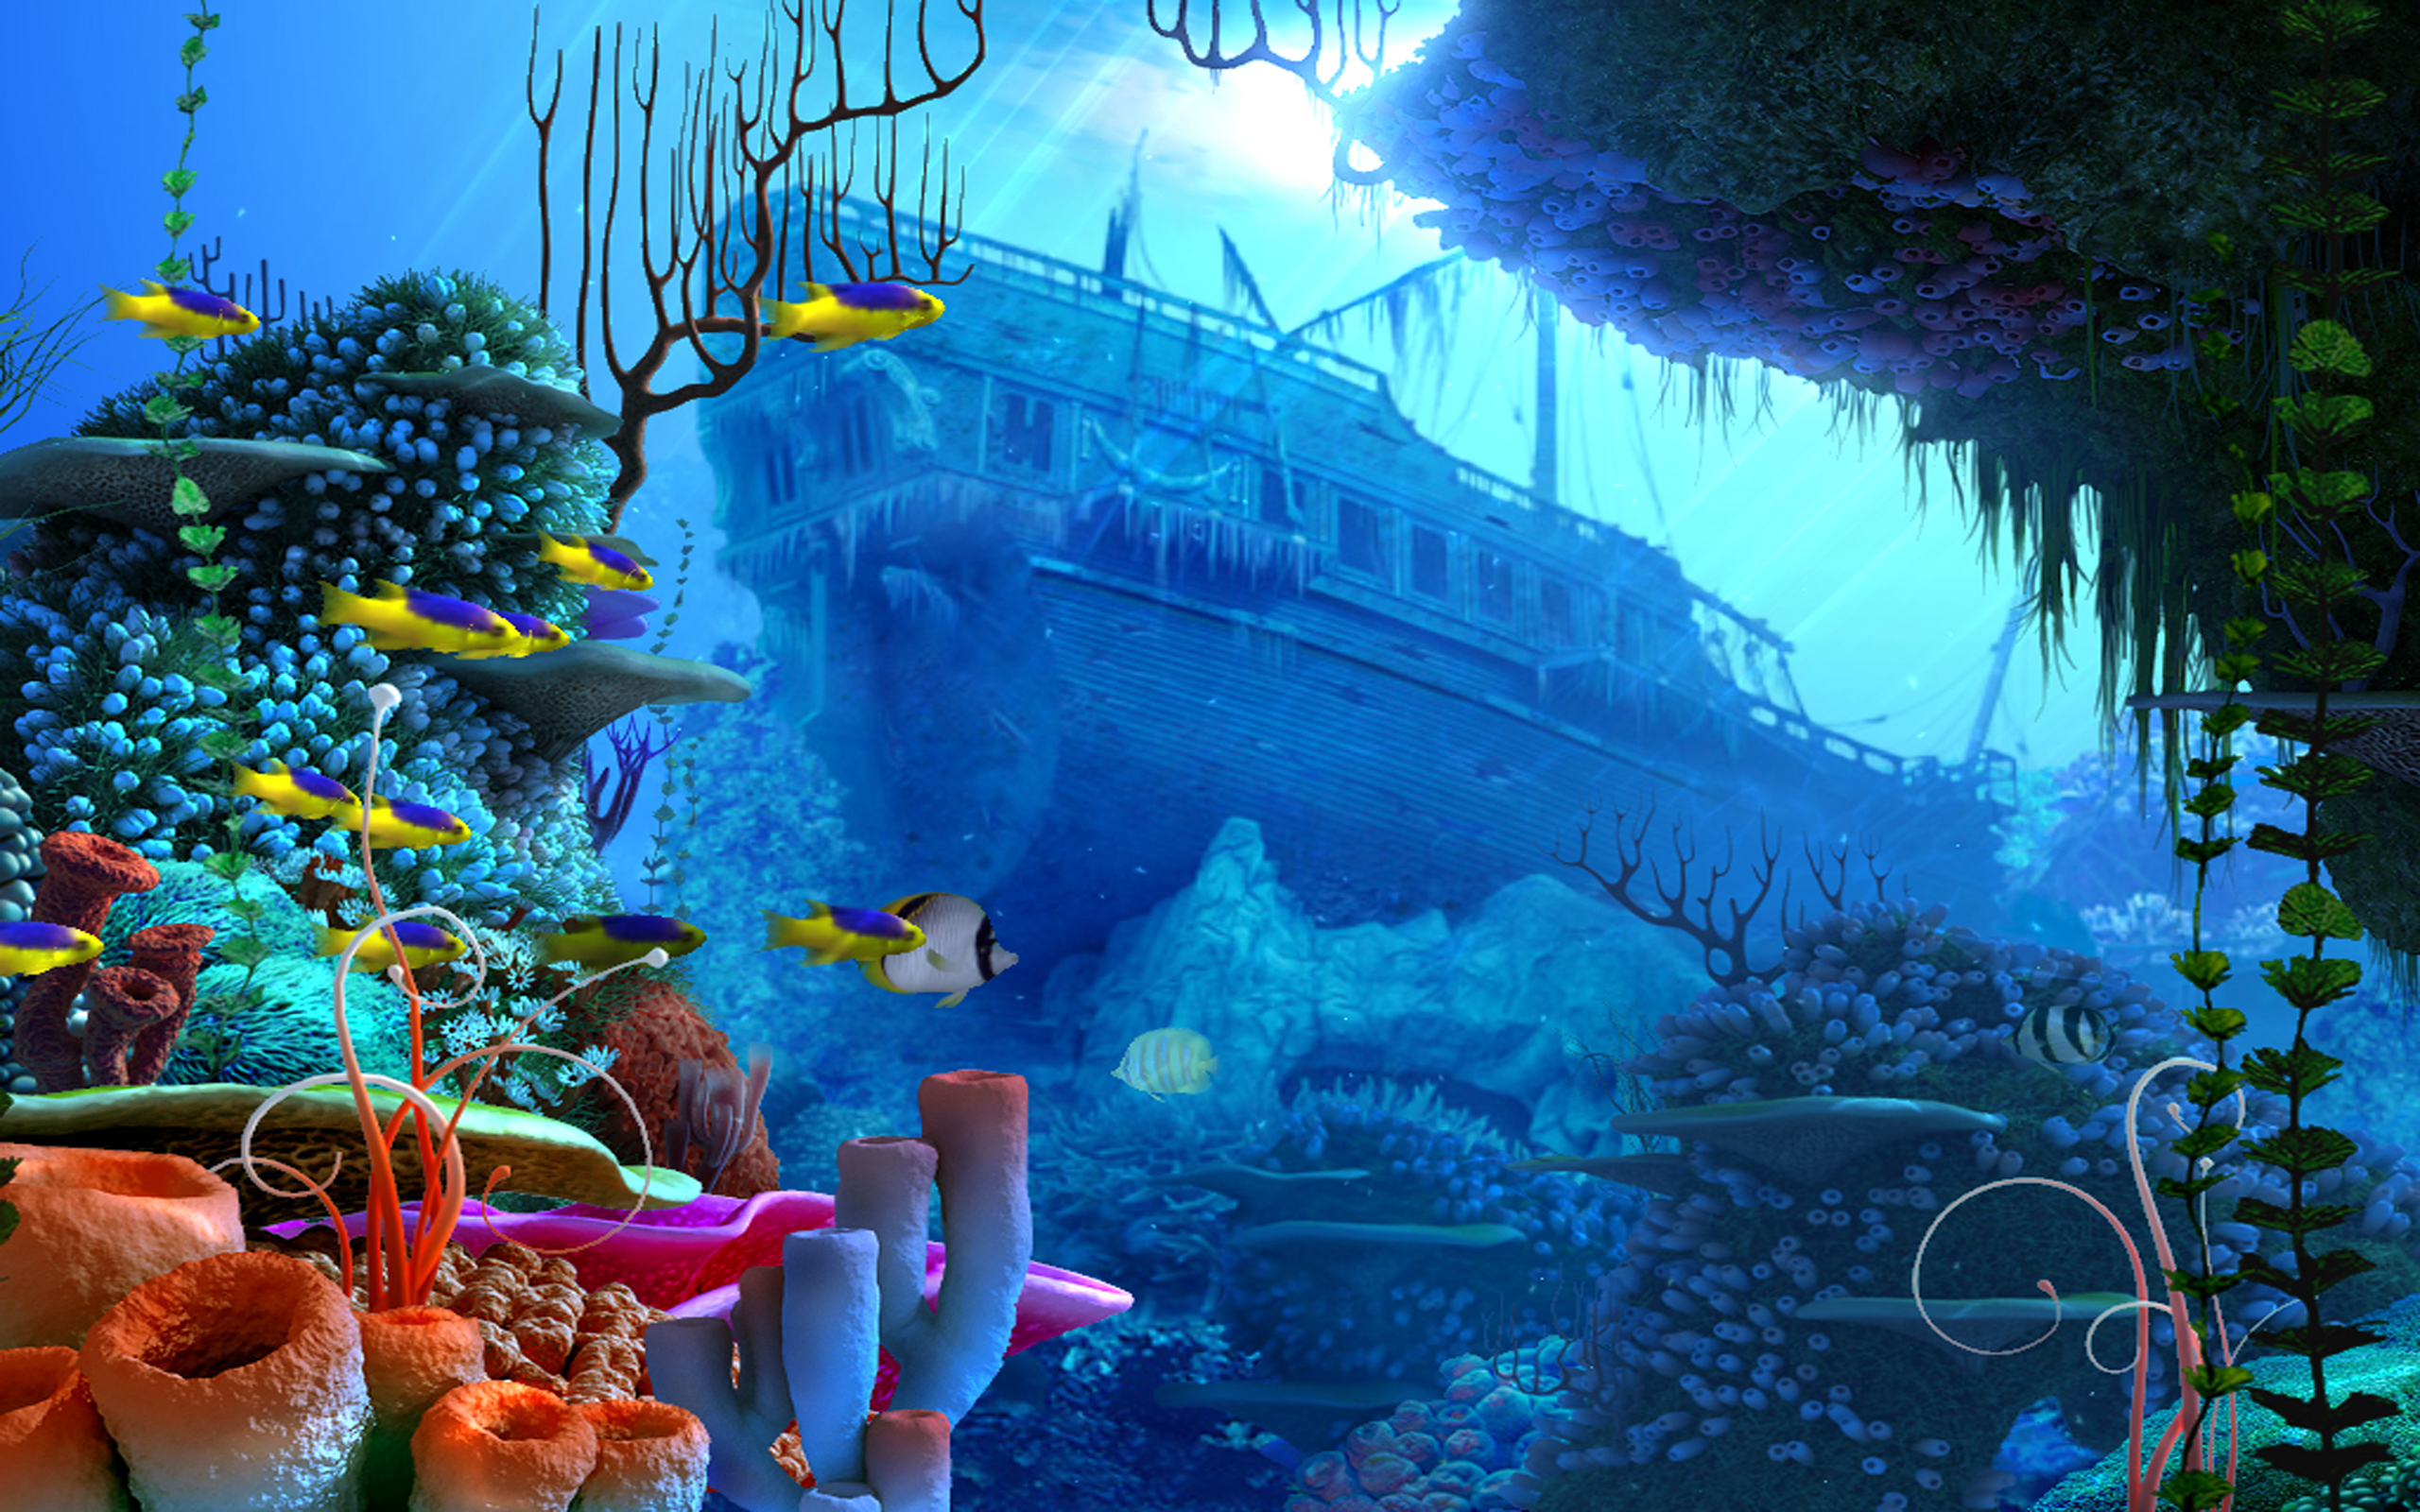 49 Live Underwater Wallpapers For Pc On Wallpapersafari